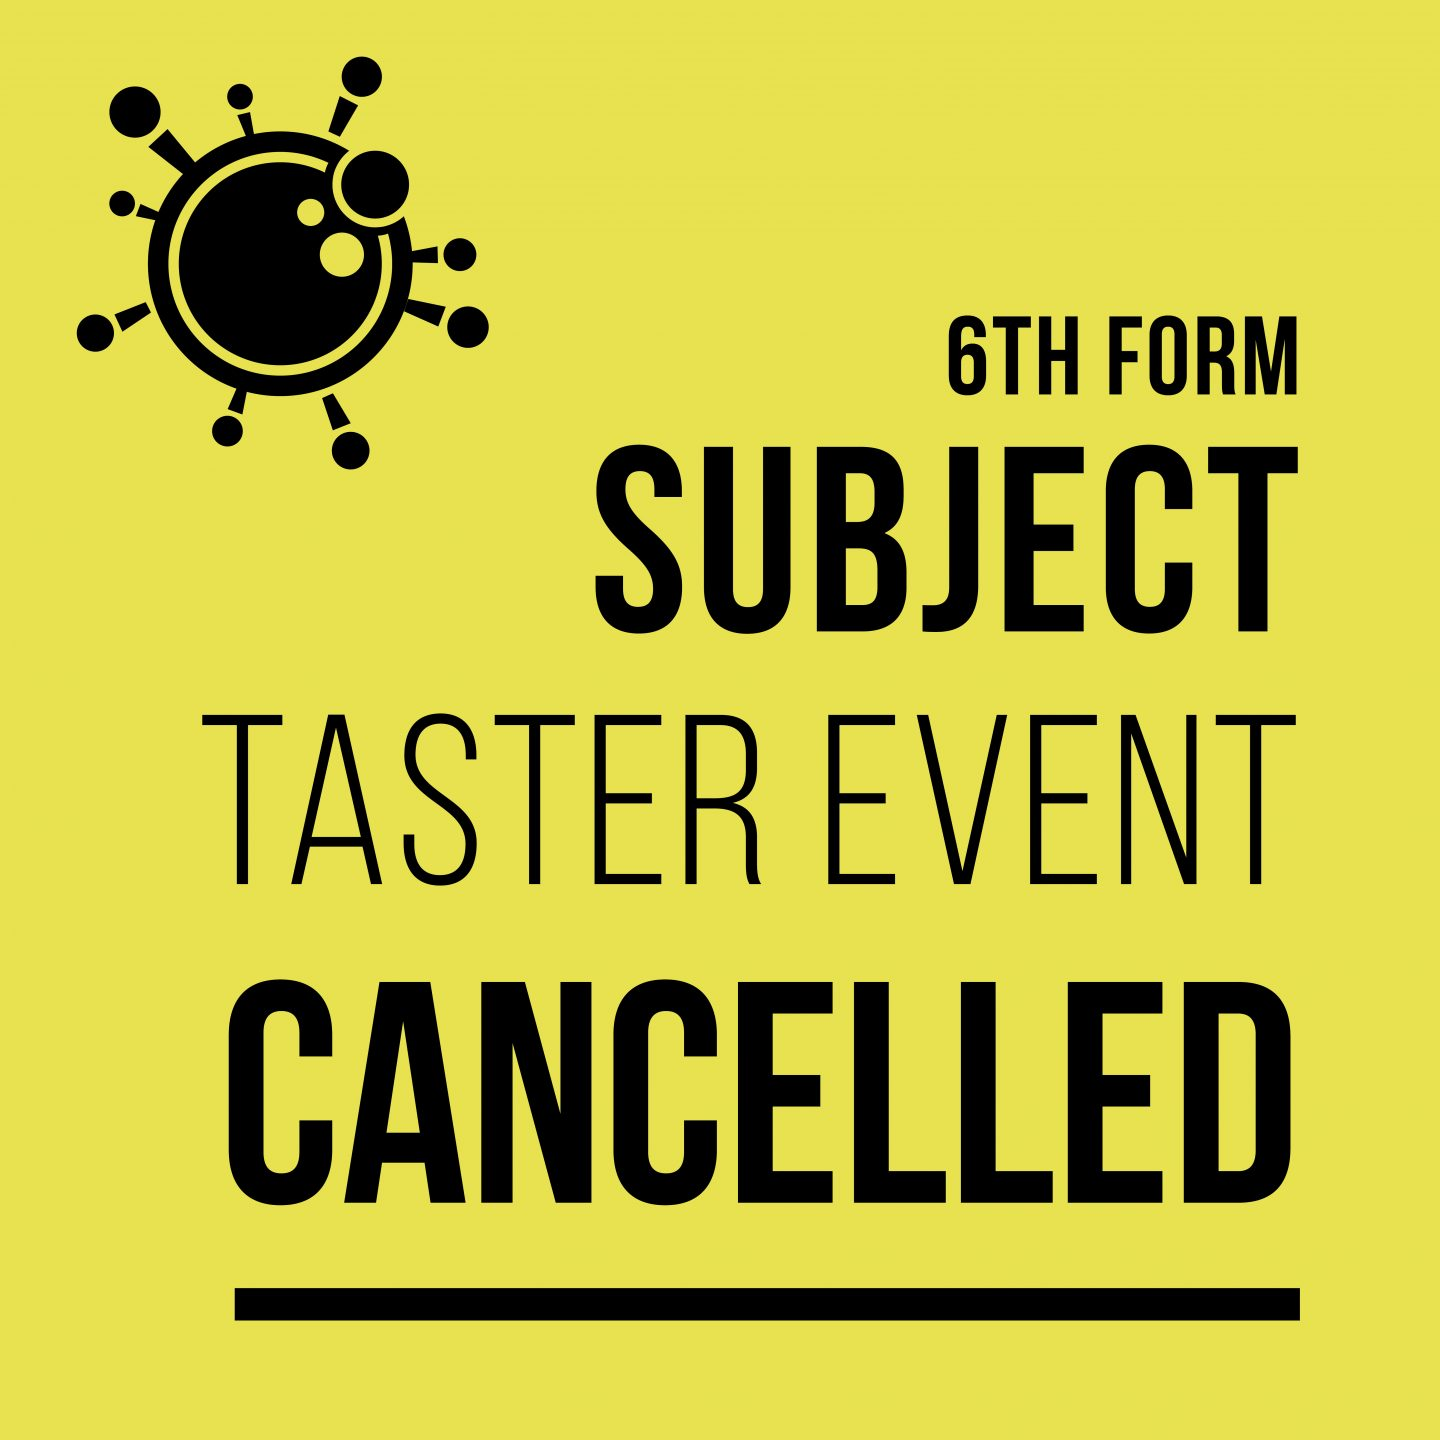 Subject Taster Event Cancelled